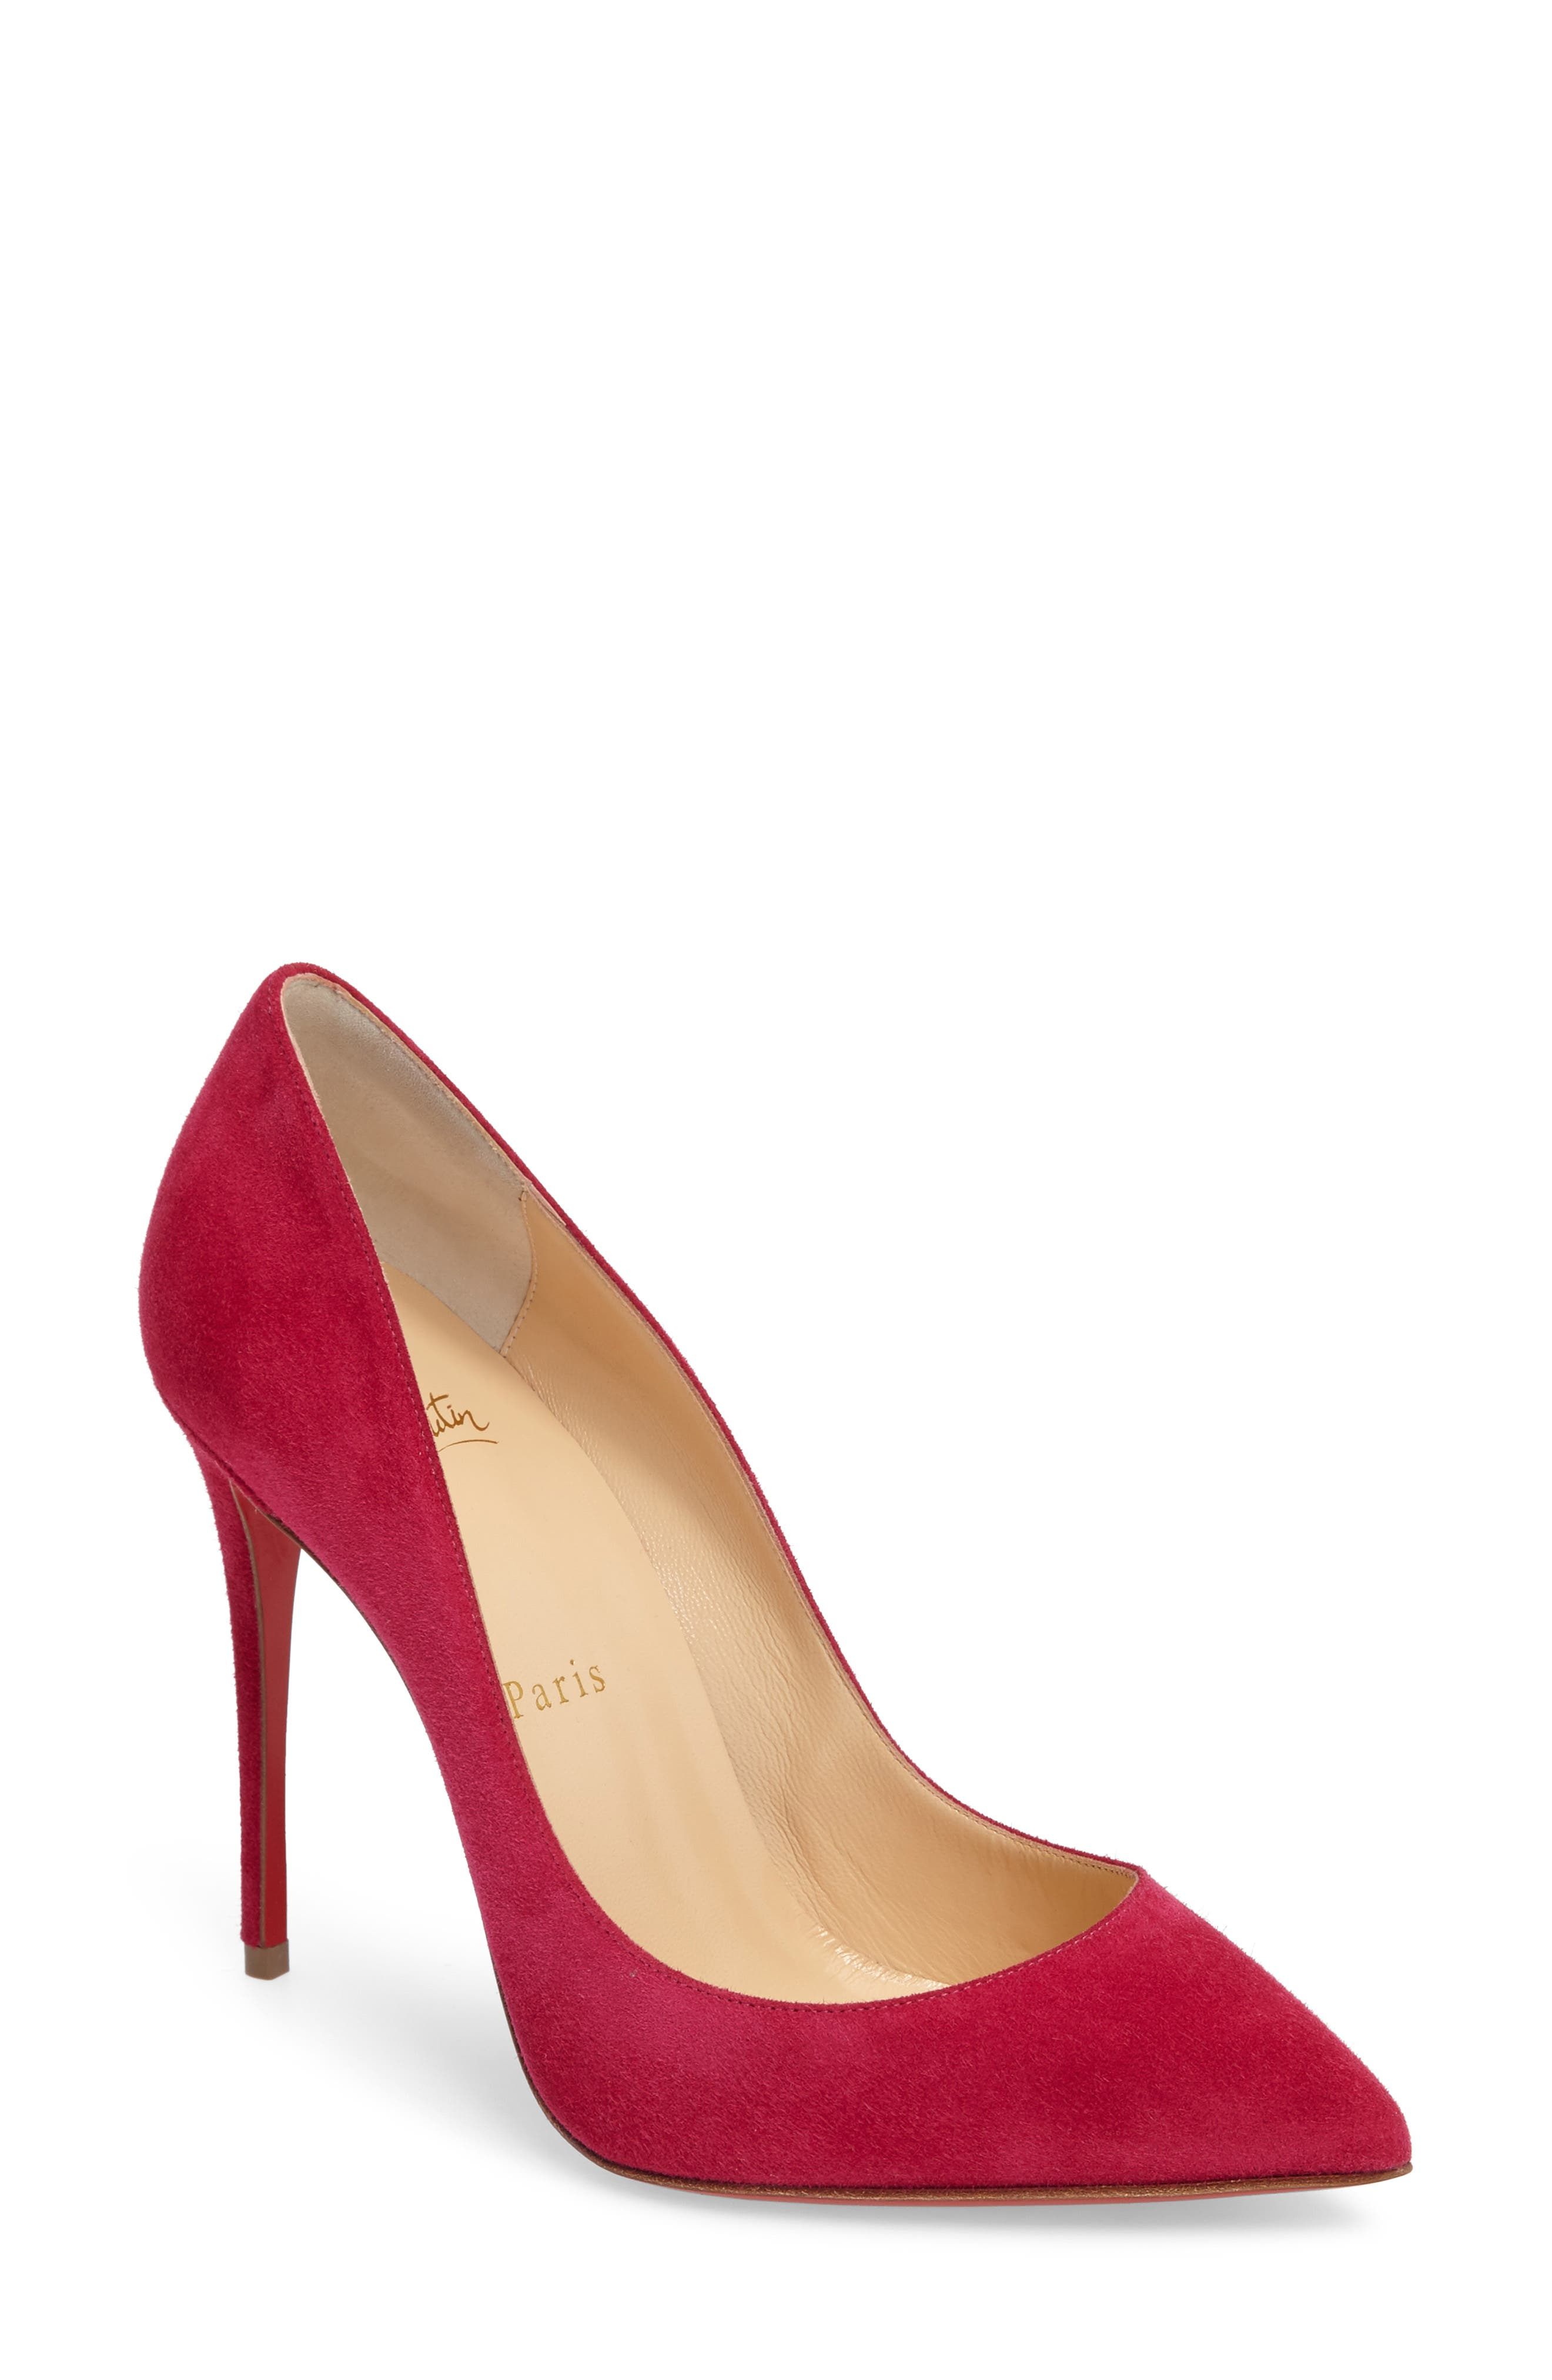 Pigalle Follies Pointy Toe Pump,                             Main thumbnail 1, color,                             Rosa Suede